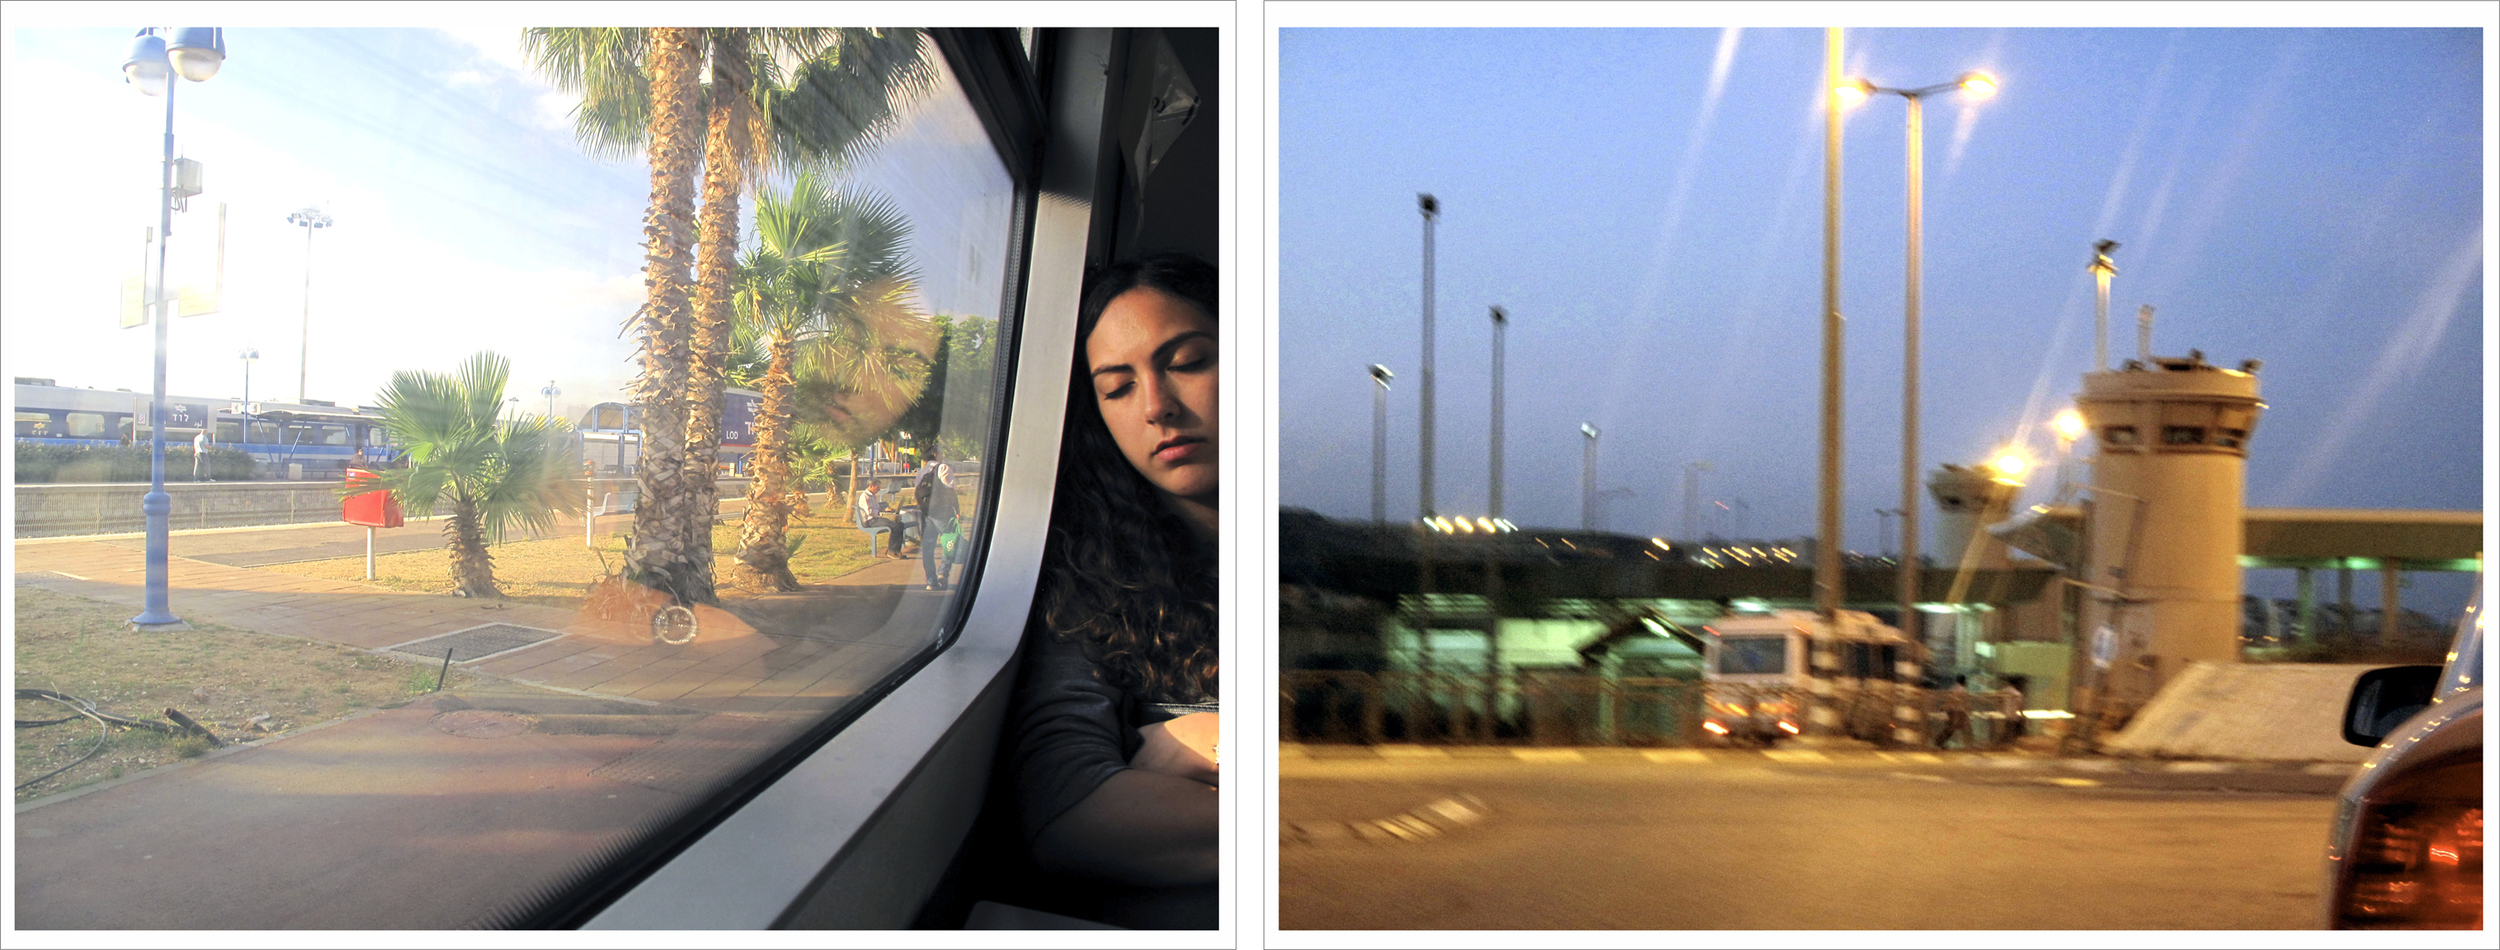 "(left) 17:15, May 26, 2013 ""Train Stop: Lydda / Lod"". (right) 19:00, May 26, 2013 ""Arrival Qalandiya Checkpoint"", The West Bank, The Occupied Territories."